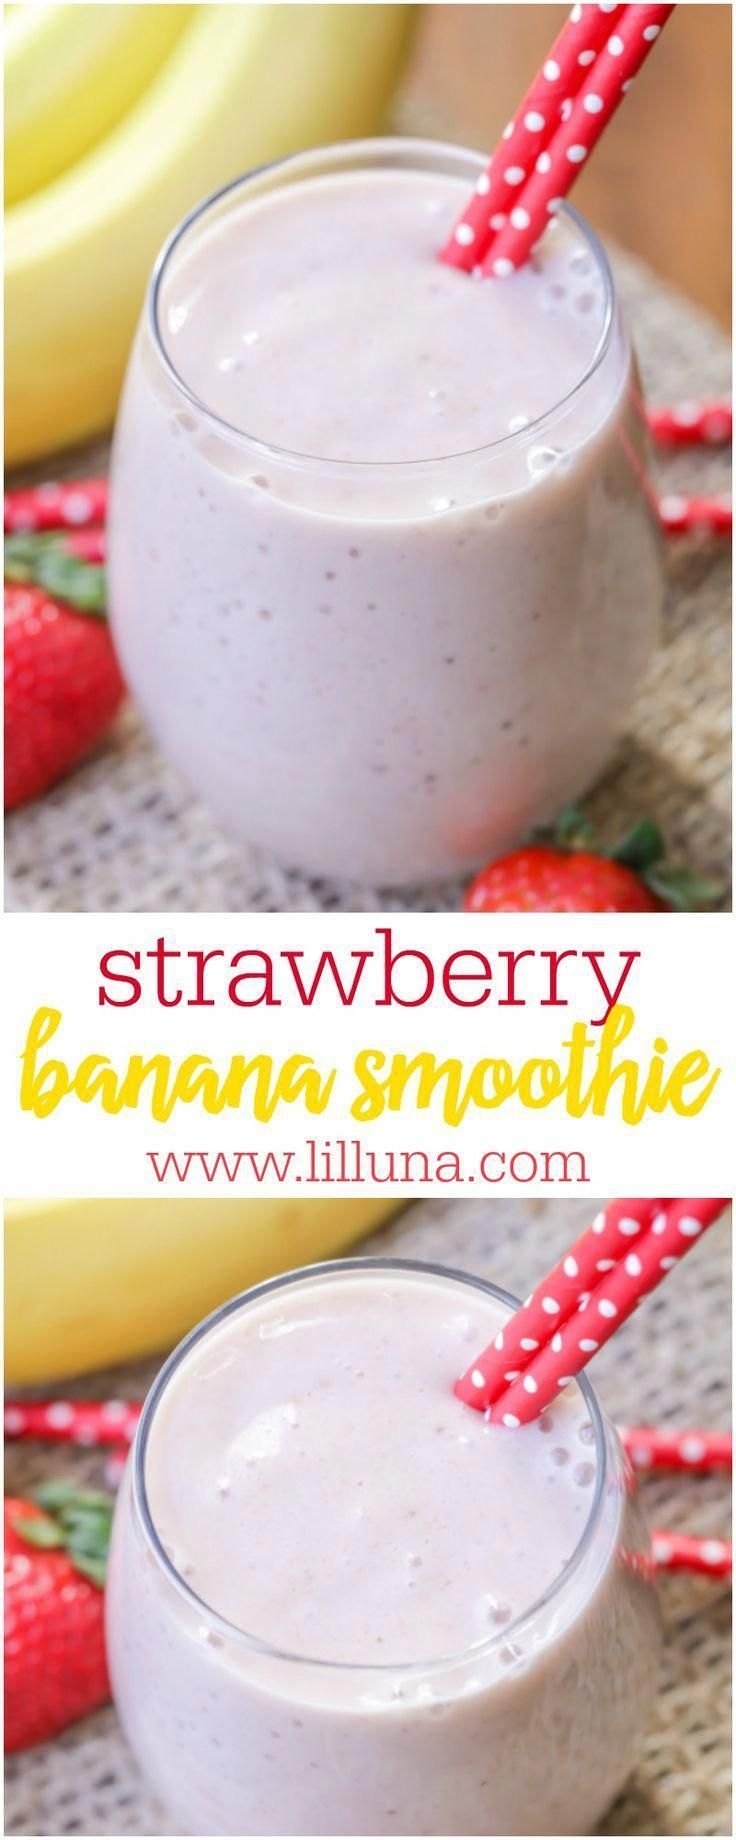 This Strawberry Banana Smoothie recipe is delicious and made with ingredients you probably have on hand - bananas, strawberries, yogurt and milk! #smoothierecipes #healthystrawberrybananasmoothie This Strawberry Banana Smoothie recipe is delicious and made with ingredients you probably have on hand - bananas, strawberries, yogurt and milk! #smoothierecipes #healthystrawberrybananasmoothie